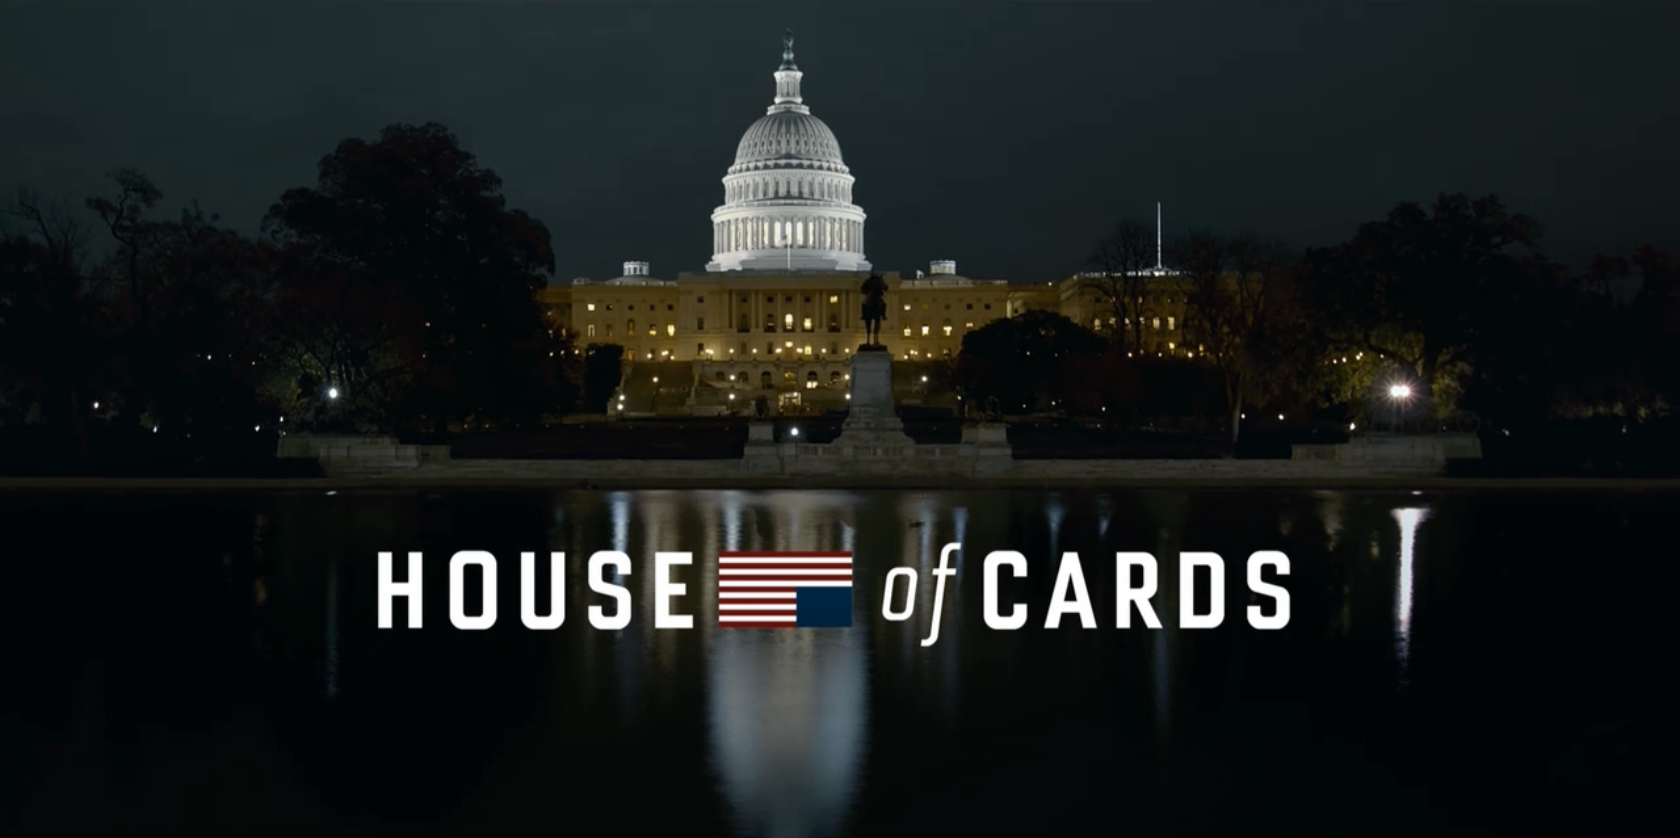 House-of-cards.png